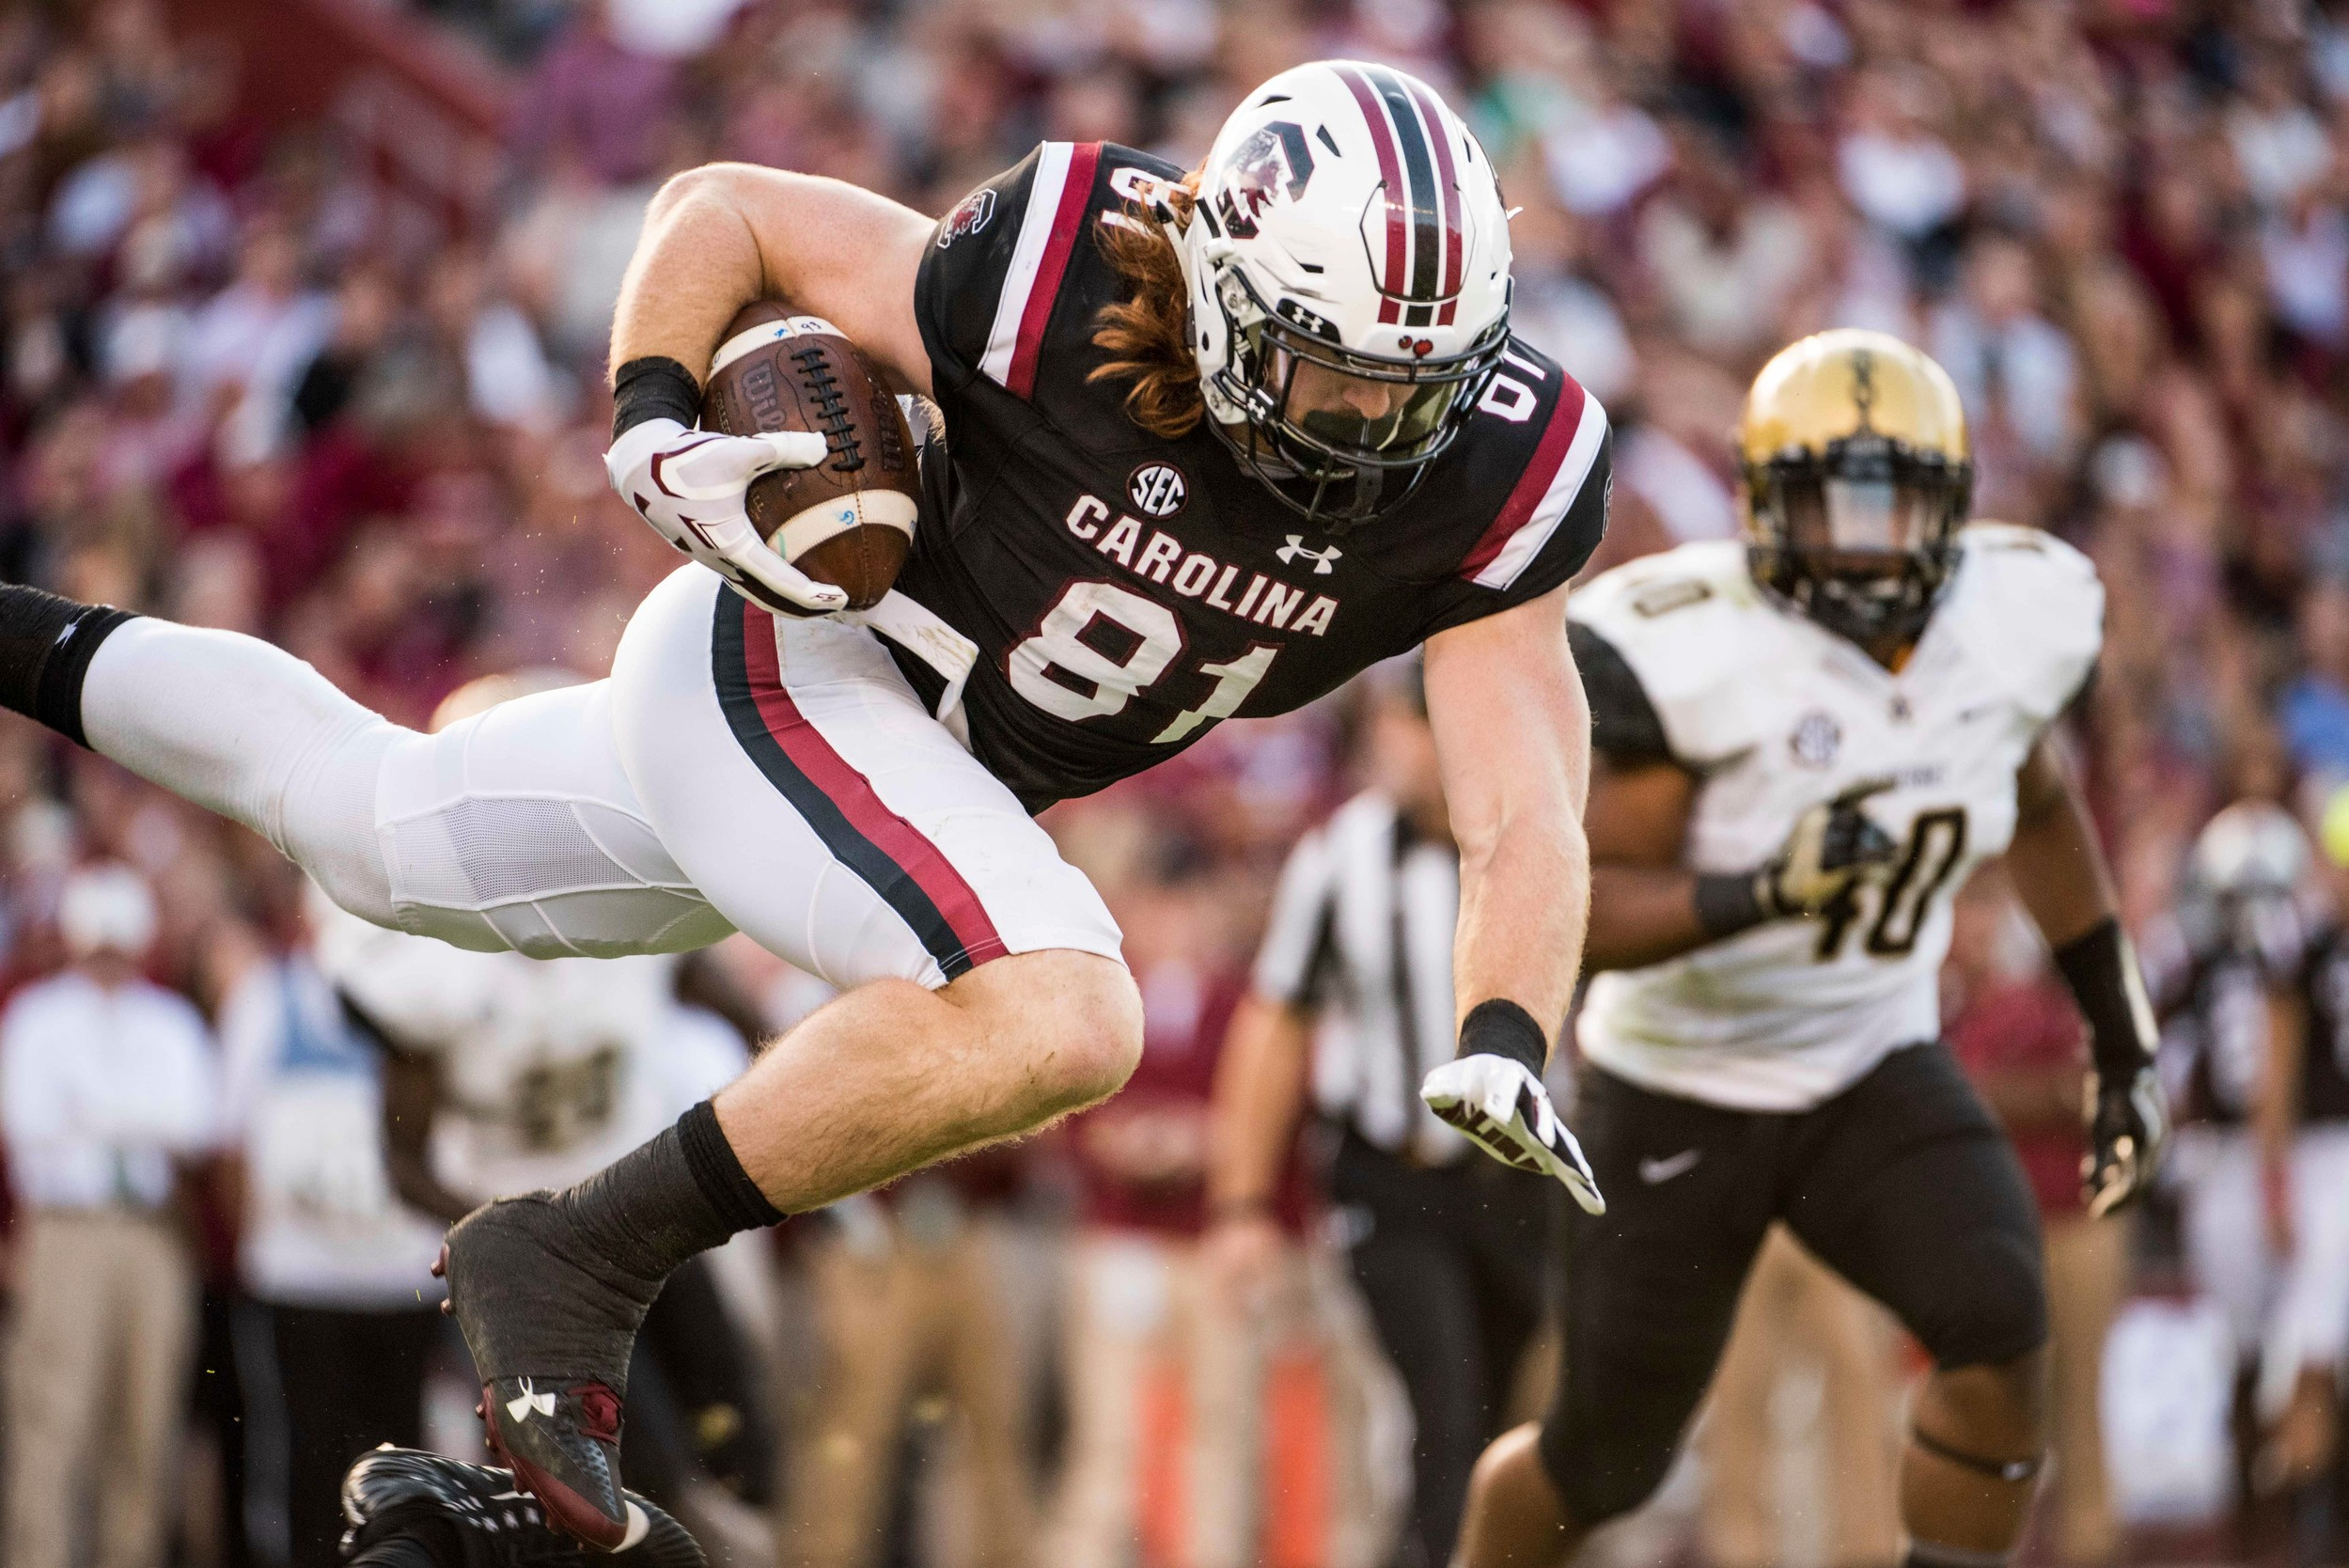 South Carolina tight end Hayden Hurst (81) will be playing his final game for the Gamecocks when they take on Michigan on Monday in the Outback Bowl in Tampa, Florida.